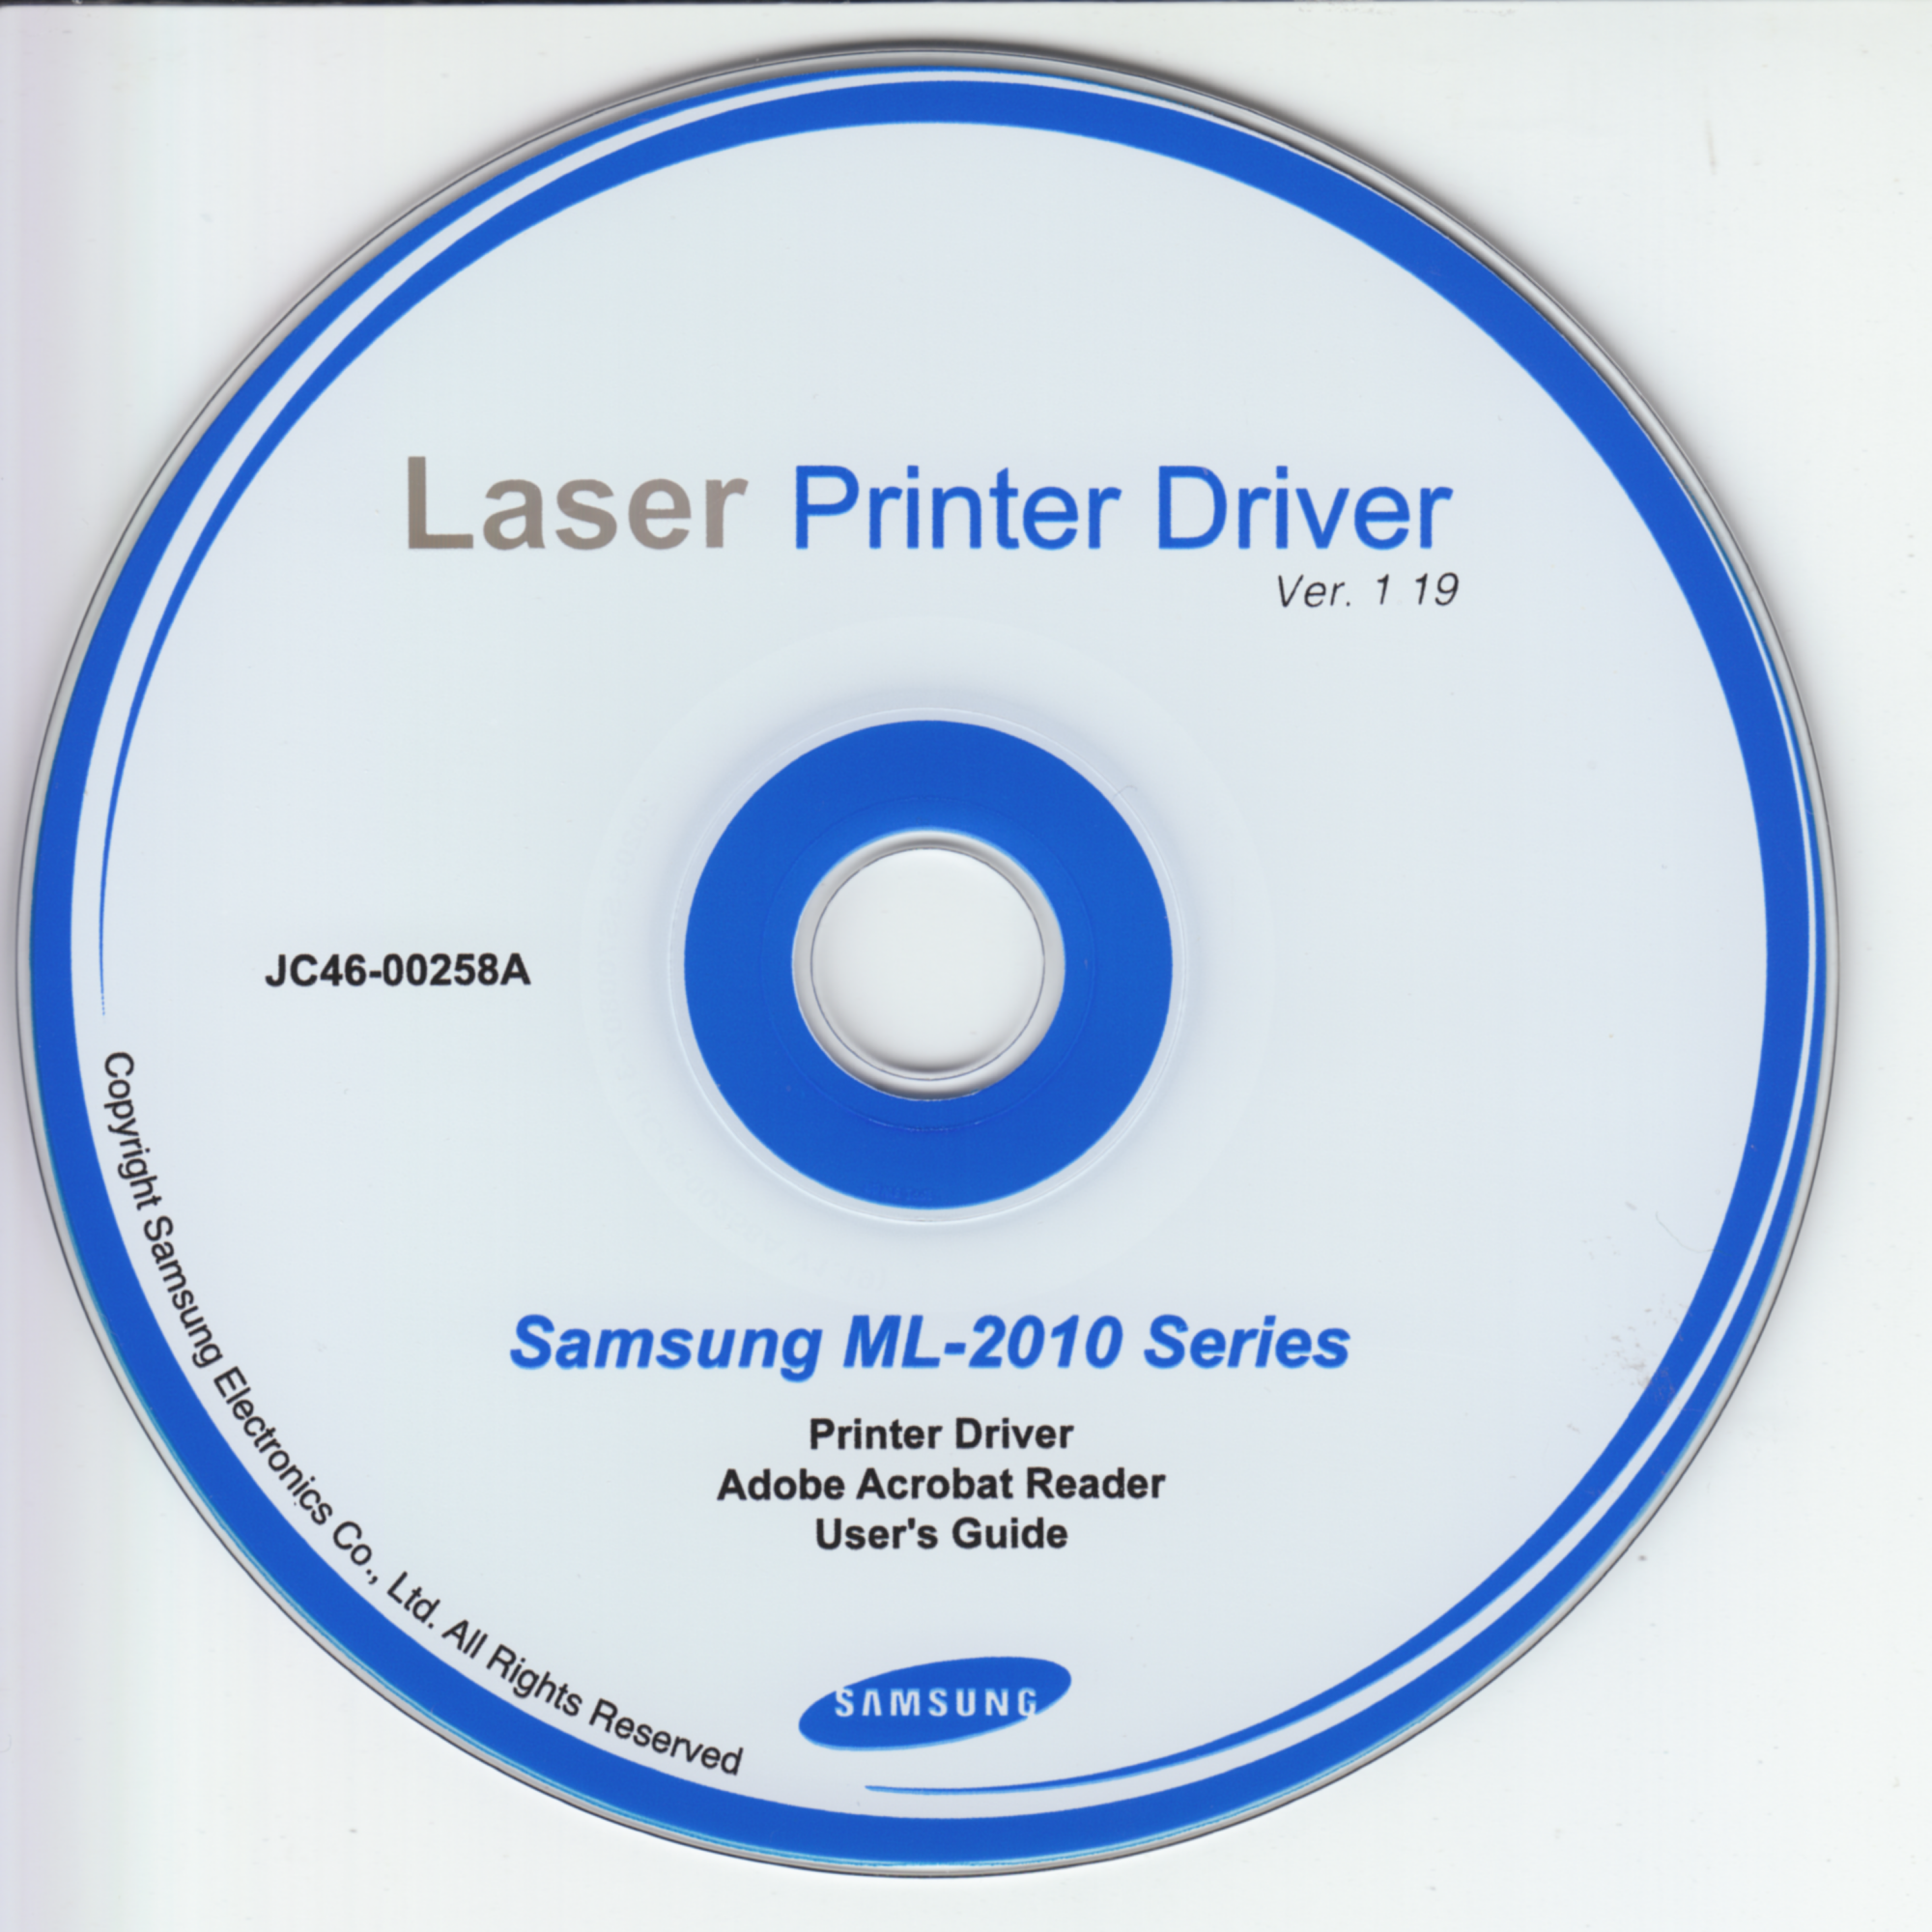 Samsung ML-2010 Series Laser Printer Driver v1.19 (JC46-00258A)